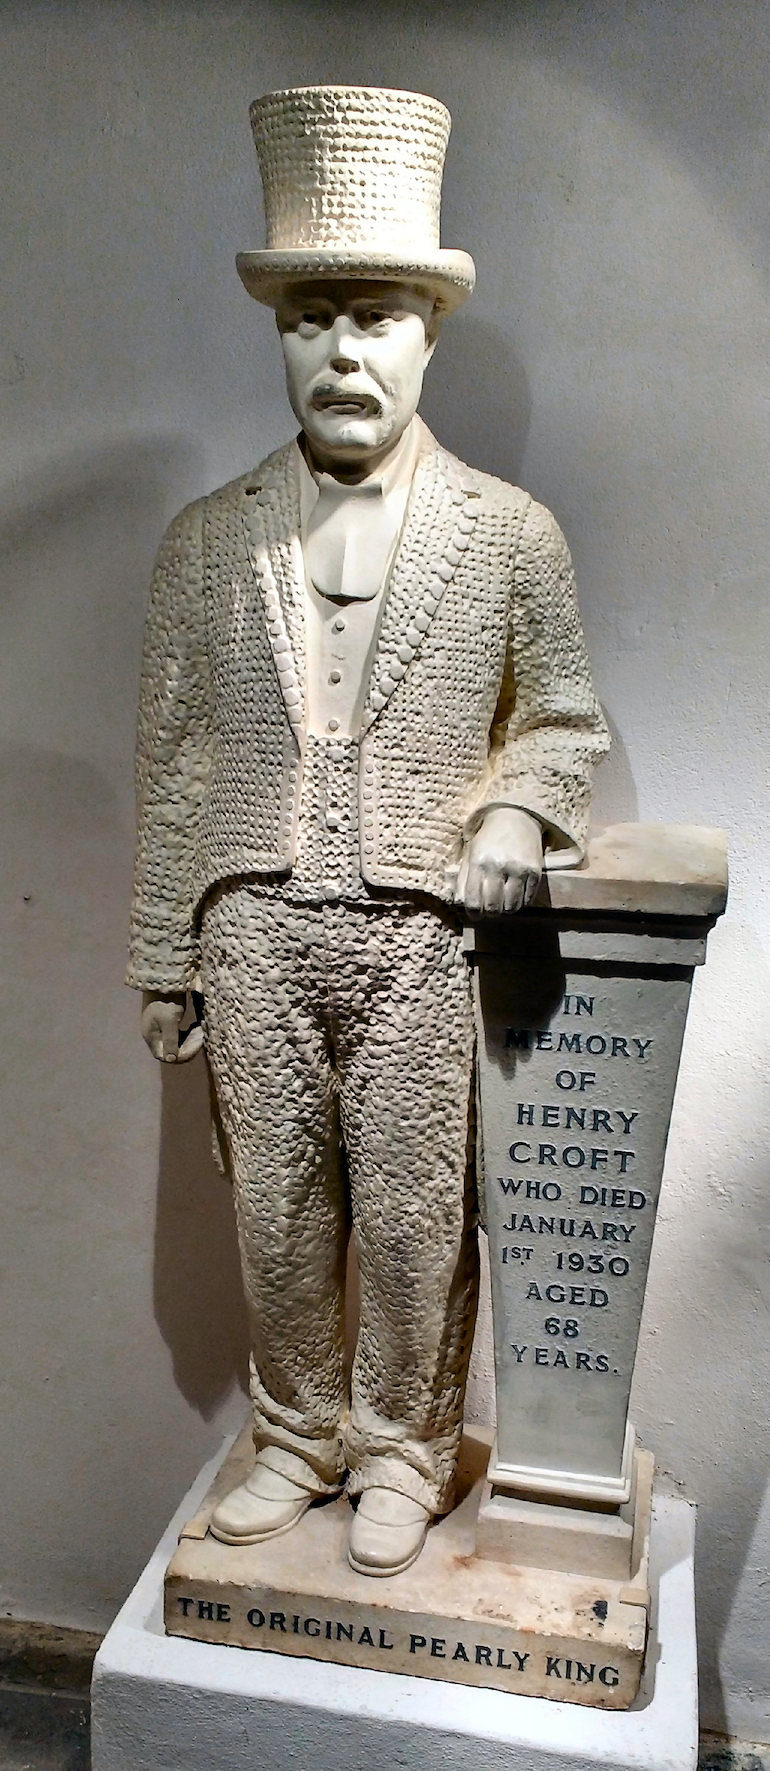 Henry Croft statue located in St Martins in the Fields in London. Photo Credit: © Andy Scott via Wikimedia Commons.